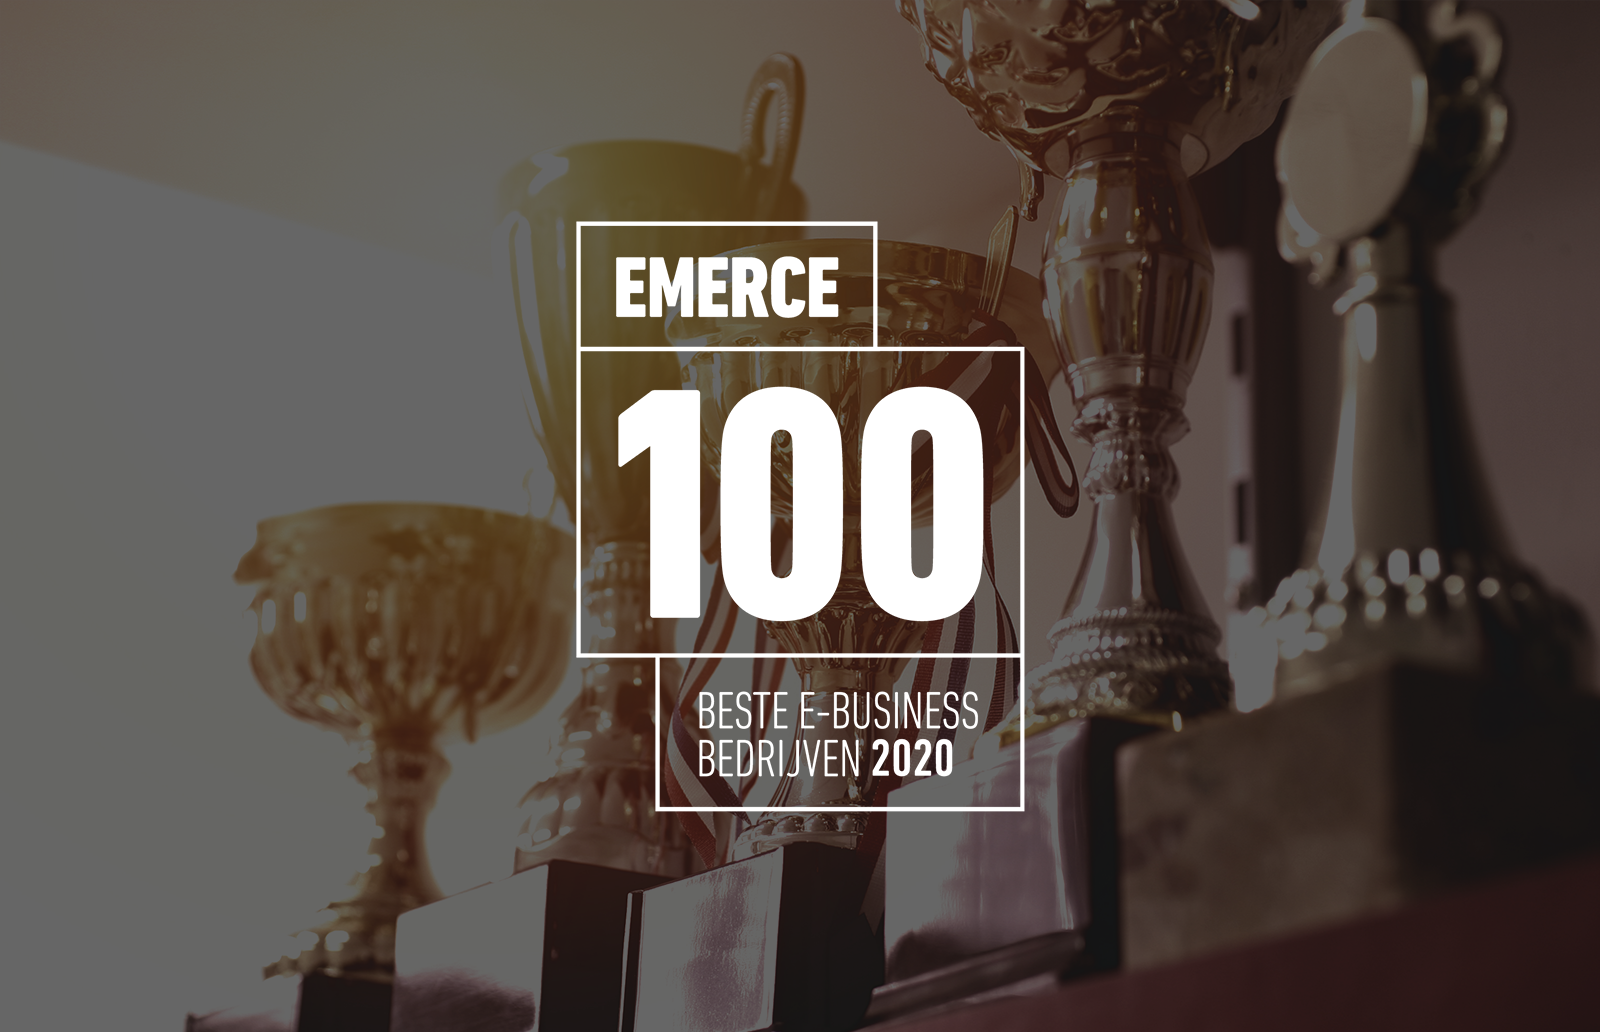 Kentico awarded five stars in the Emerce100 list for CMS software